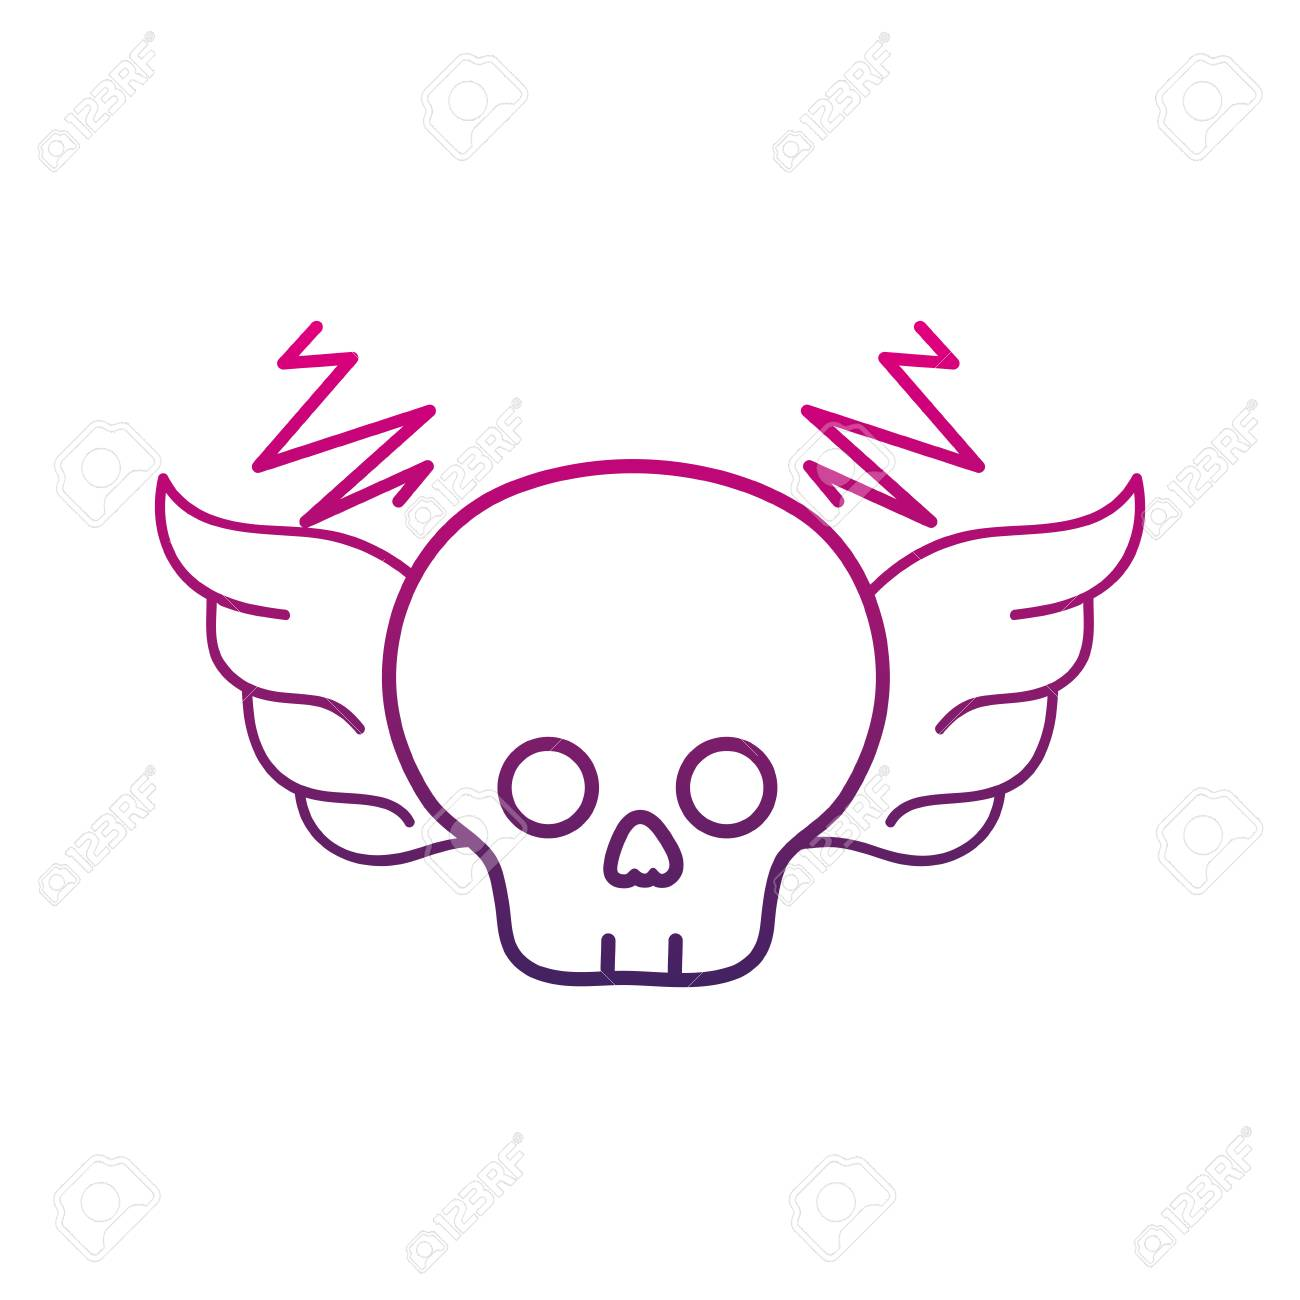 Colored Skull With Wings Outline Rock Art Symbol Vector Illustration